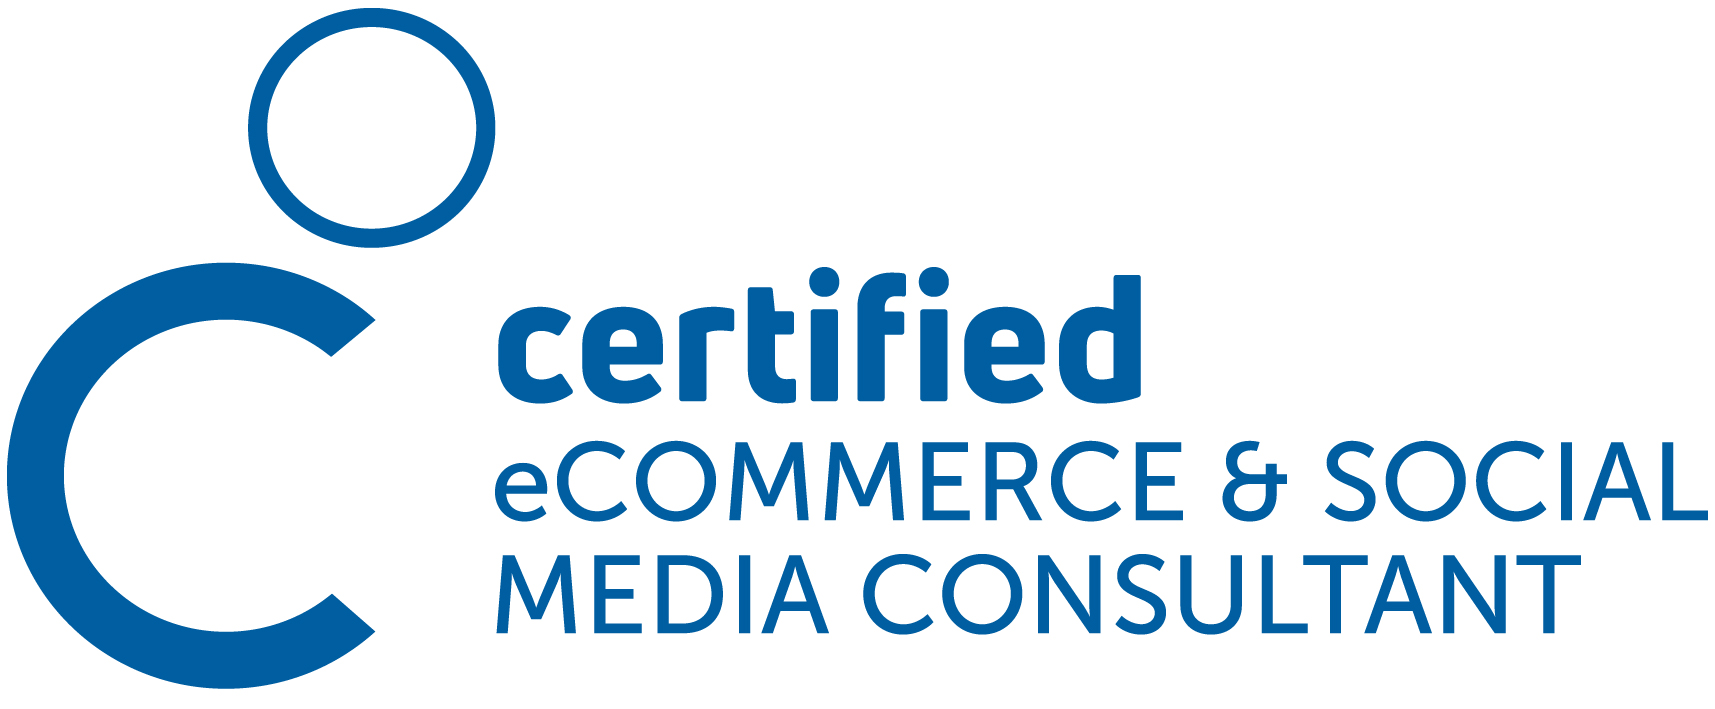 Logo Zertifizierung Certified eCommerce & Social Media Consultant